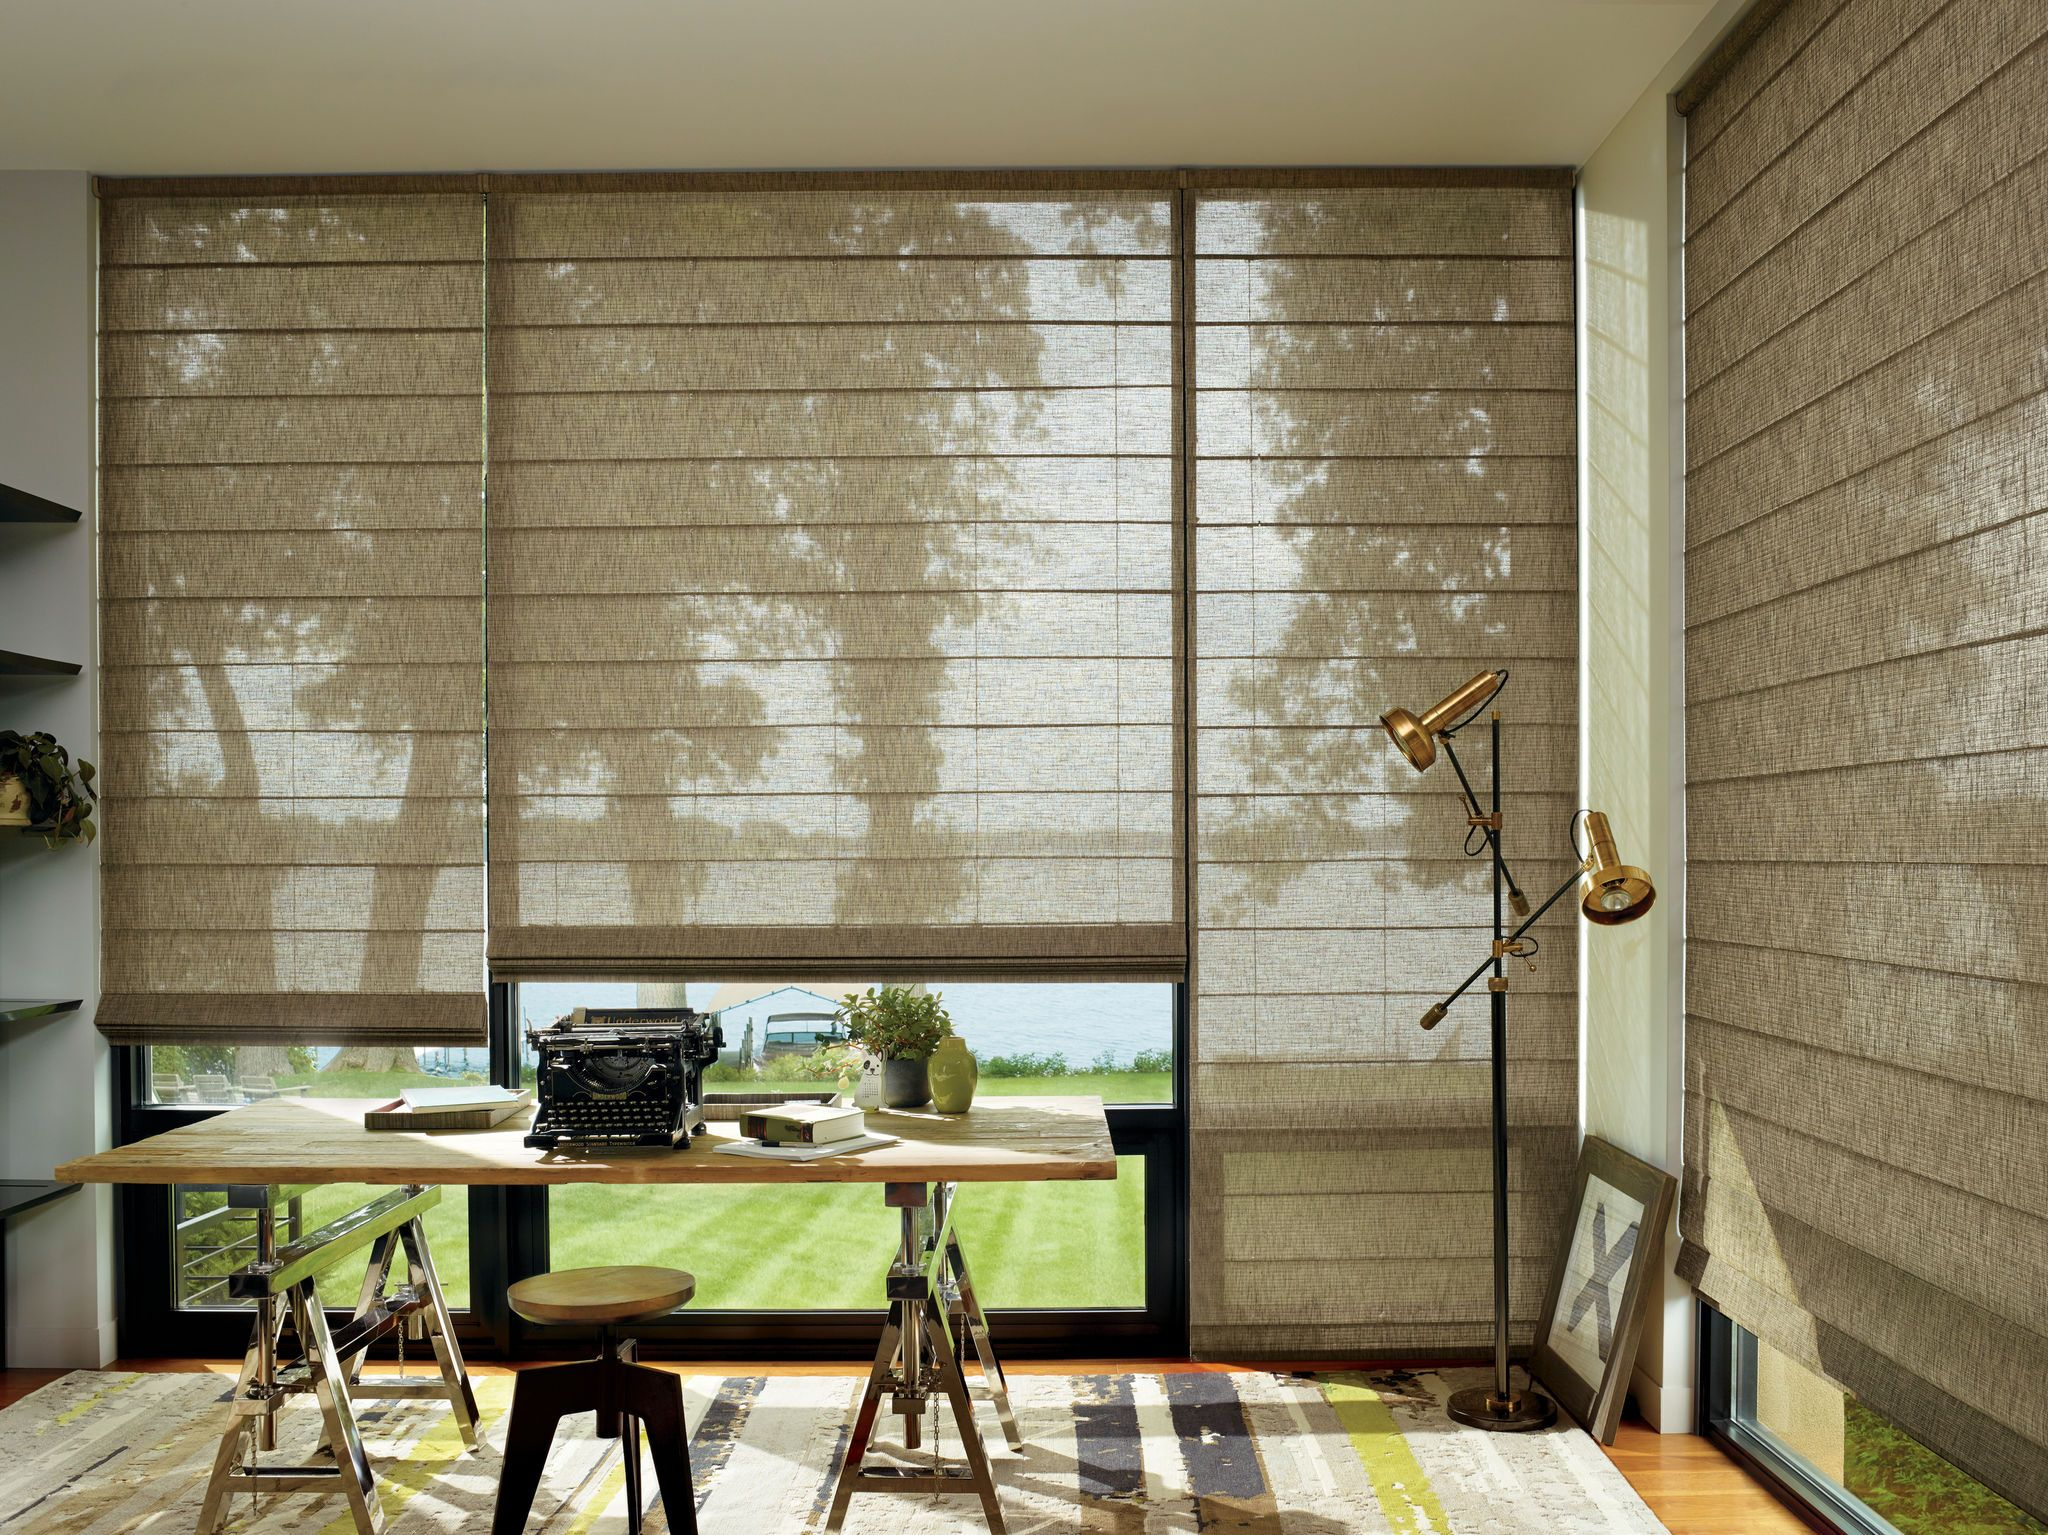 Alustra Woven Textures With Urban Billboard In Home Office Blinds Office Blinds Custom Blinds